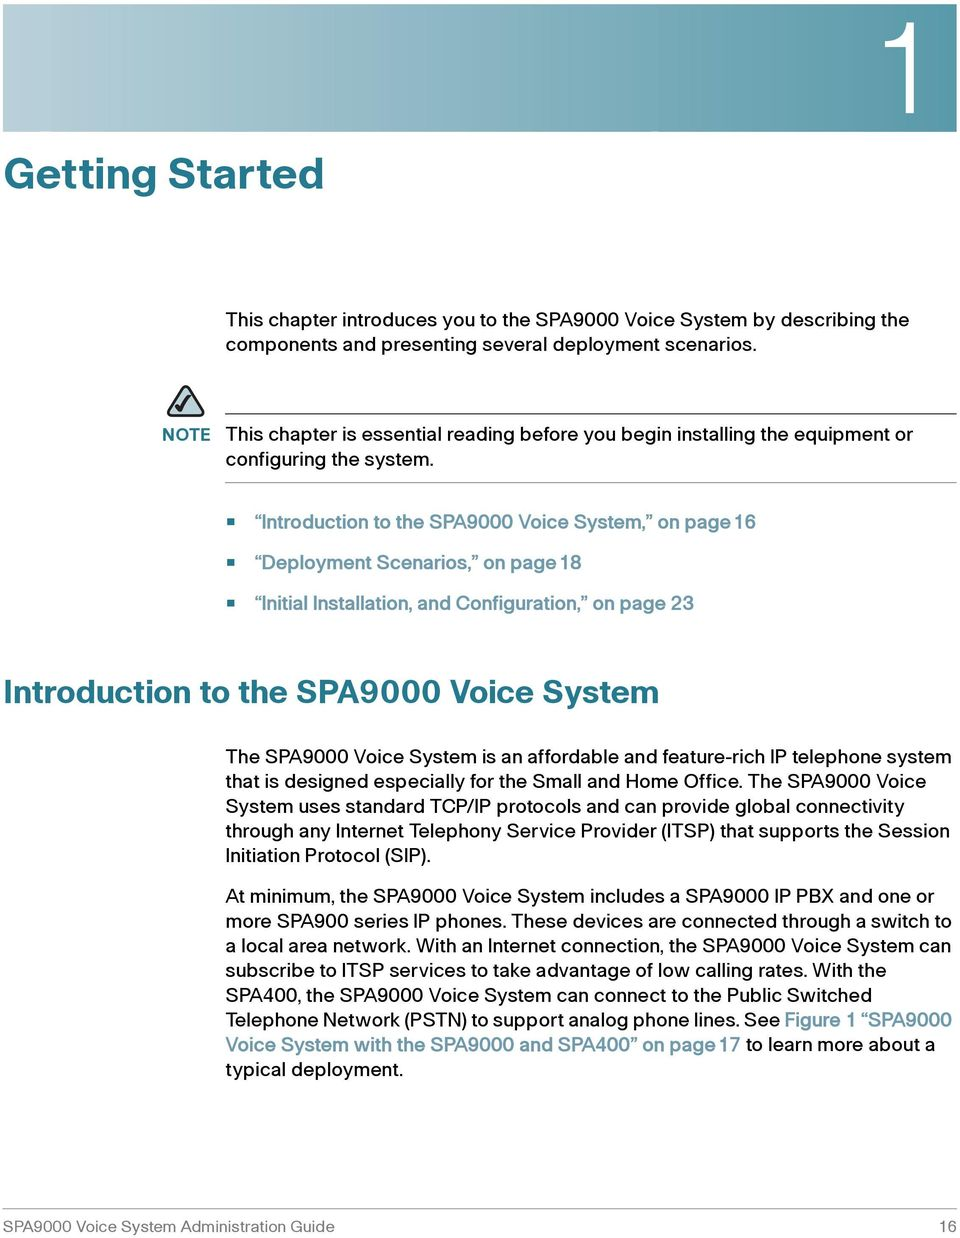 Introduction to the SPA9000 Voice System, on page16 Deployment Scenarios, on page18 Initial Installation, and Configuration, on page 23 Introduction to the SPA9000 Voice System The SPA9000 Voice